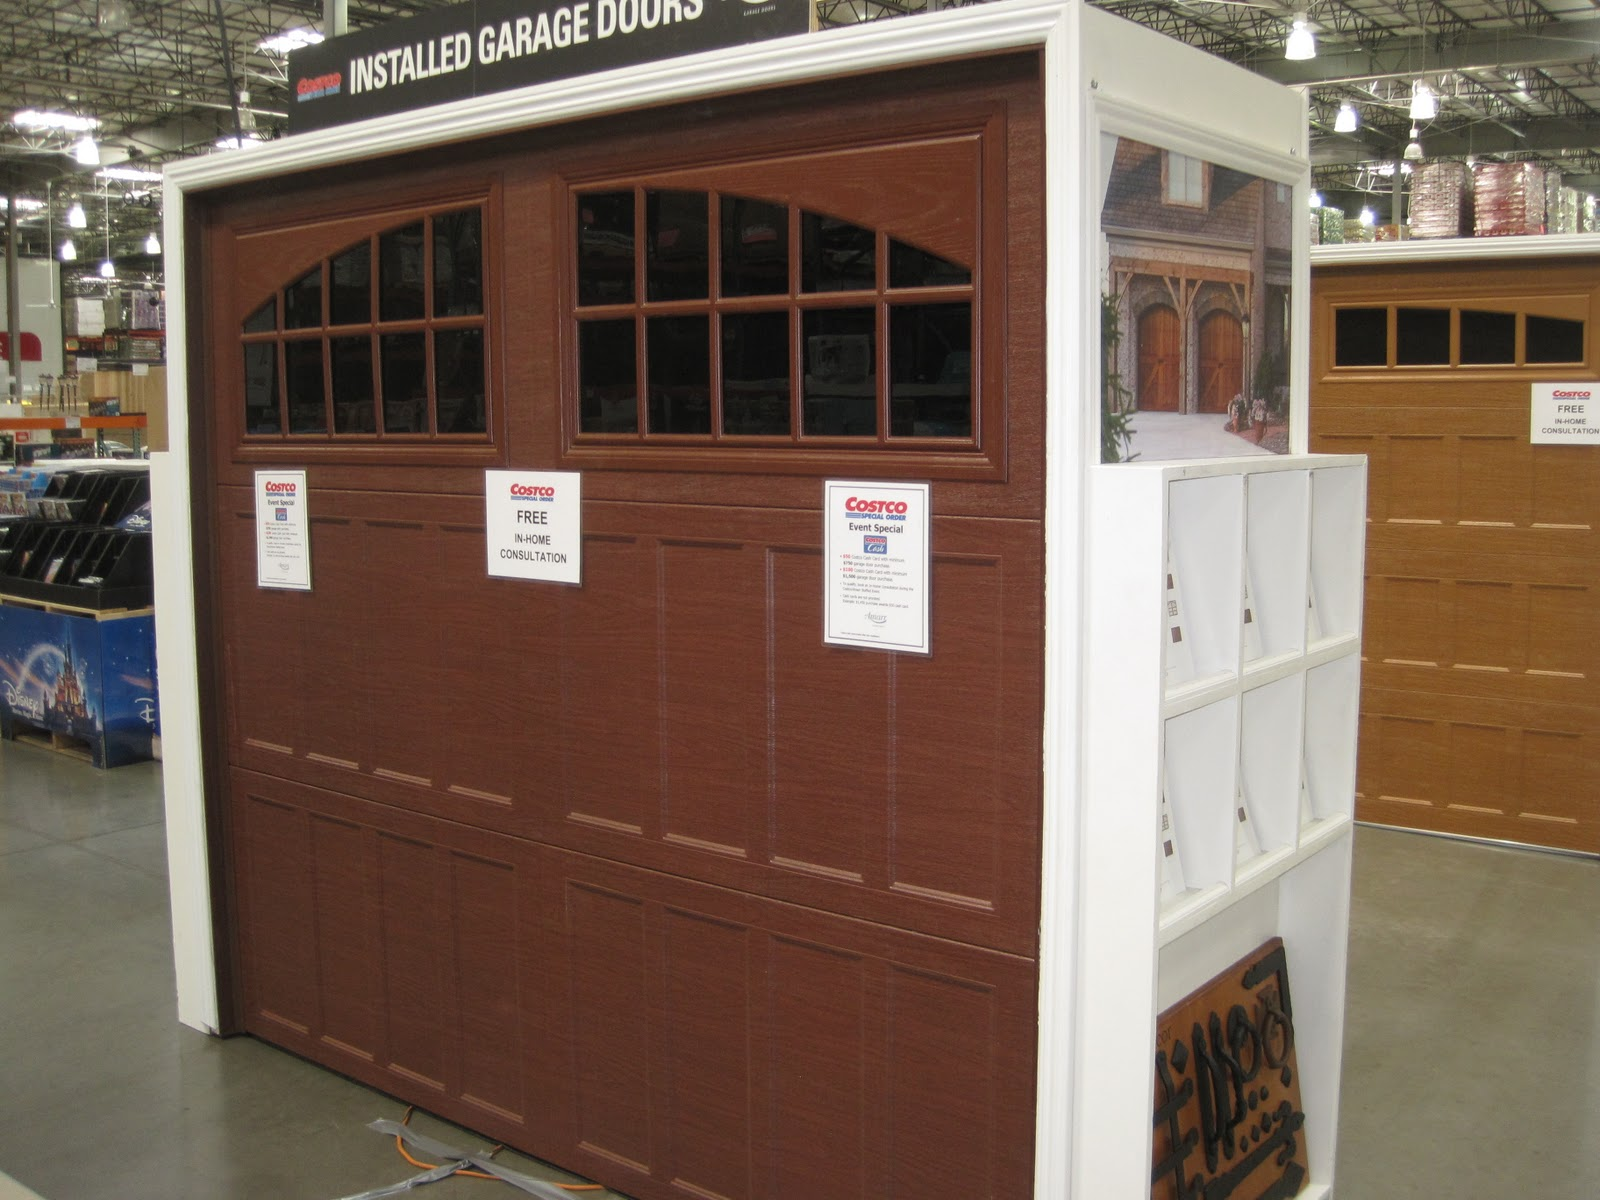 1200 #653C2B Garage Doors Unlimited: Garage Door Road Show At Costco! pic Garage Doors At Costco 36911600